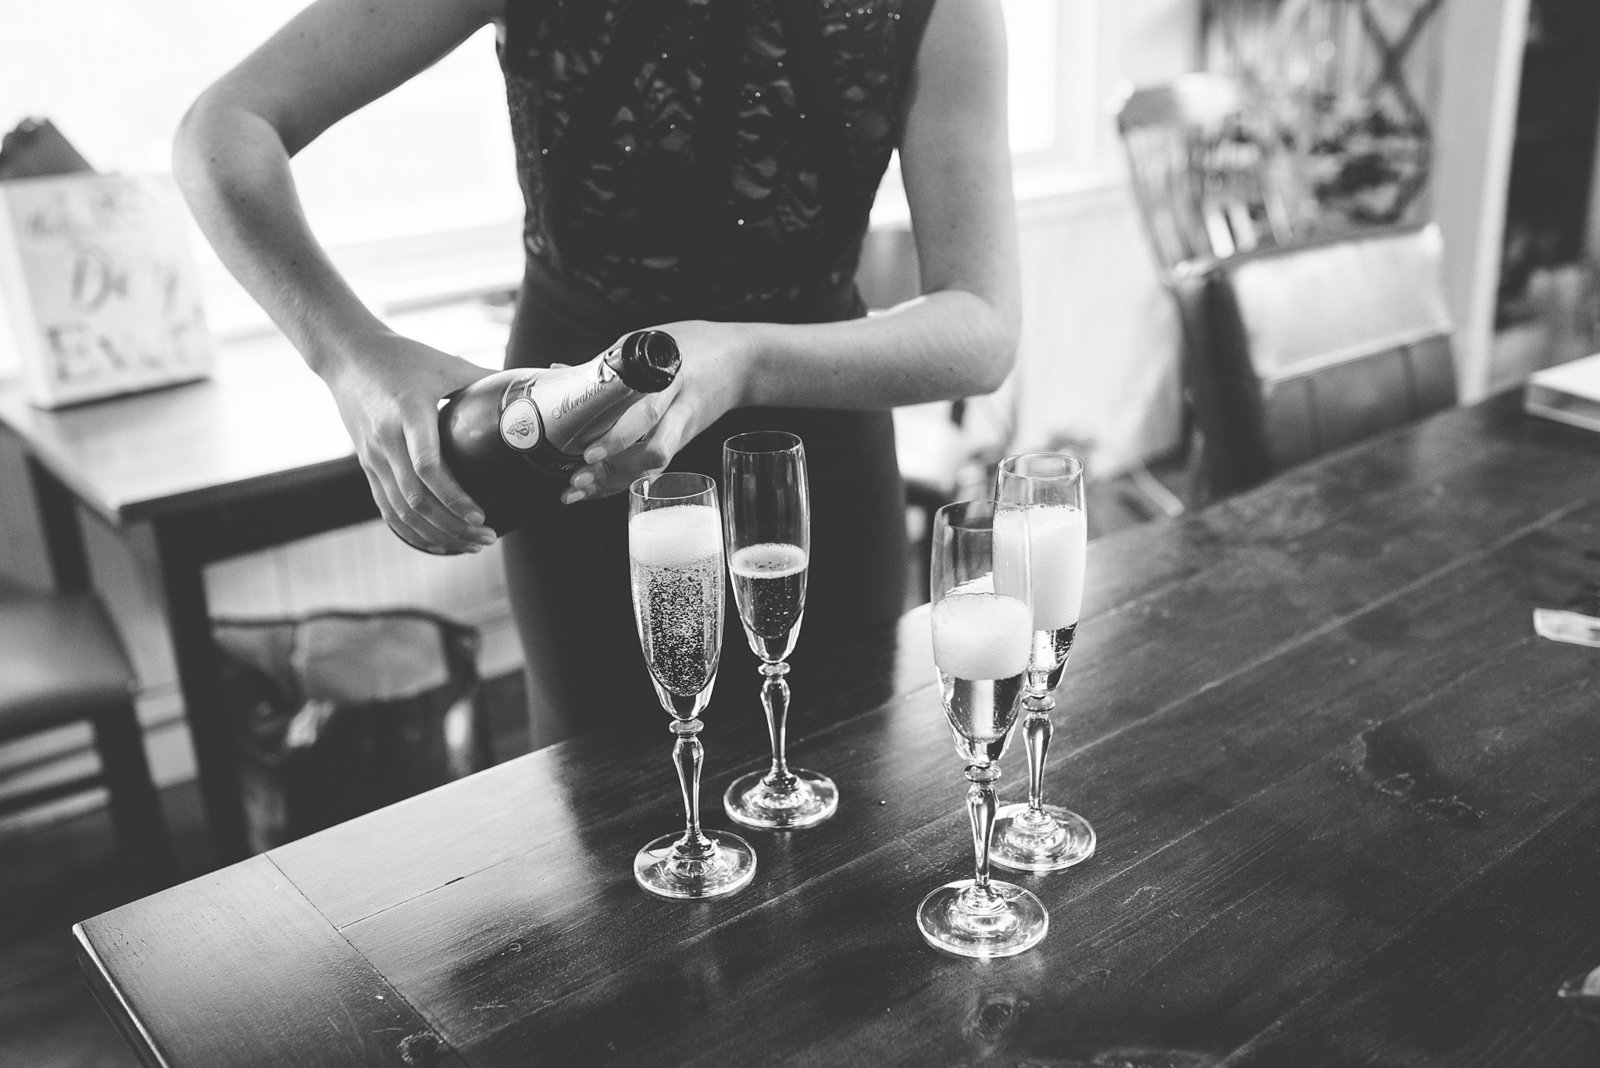 pouring champagne, black and white wedding photography, Vermont wedding photographer, documentary style wedding photography